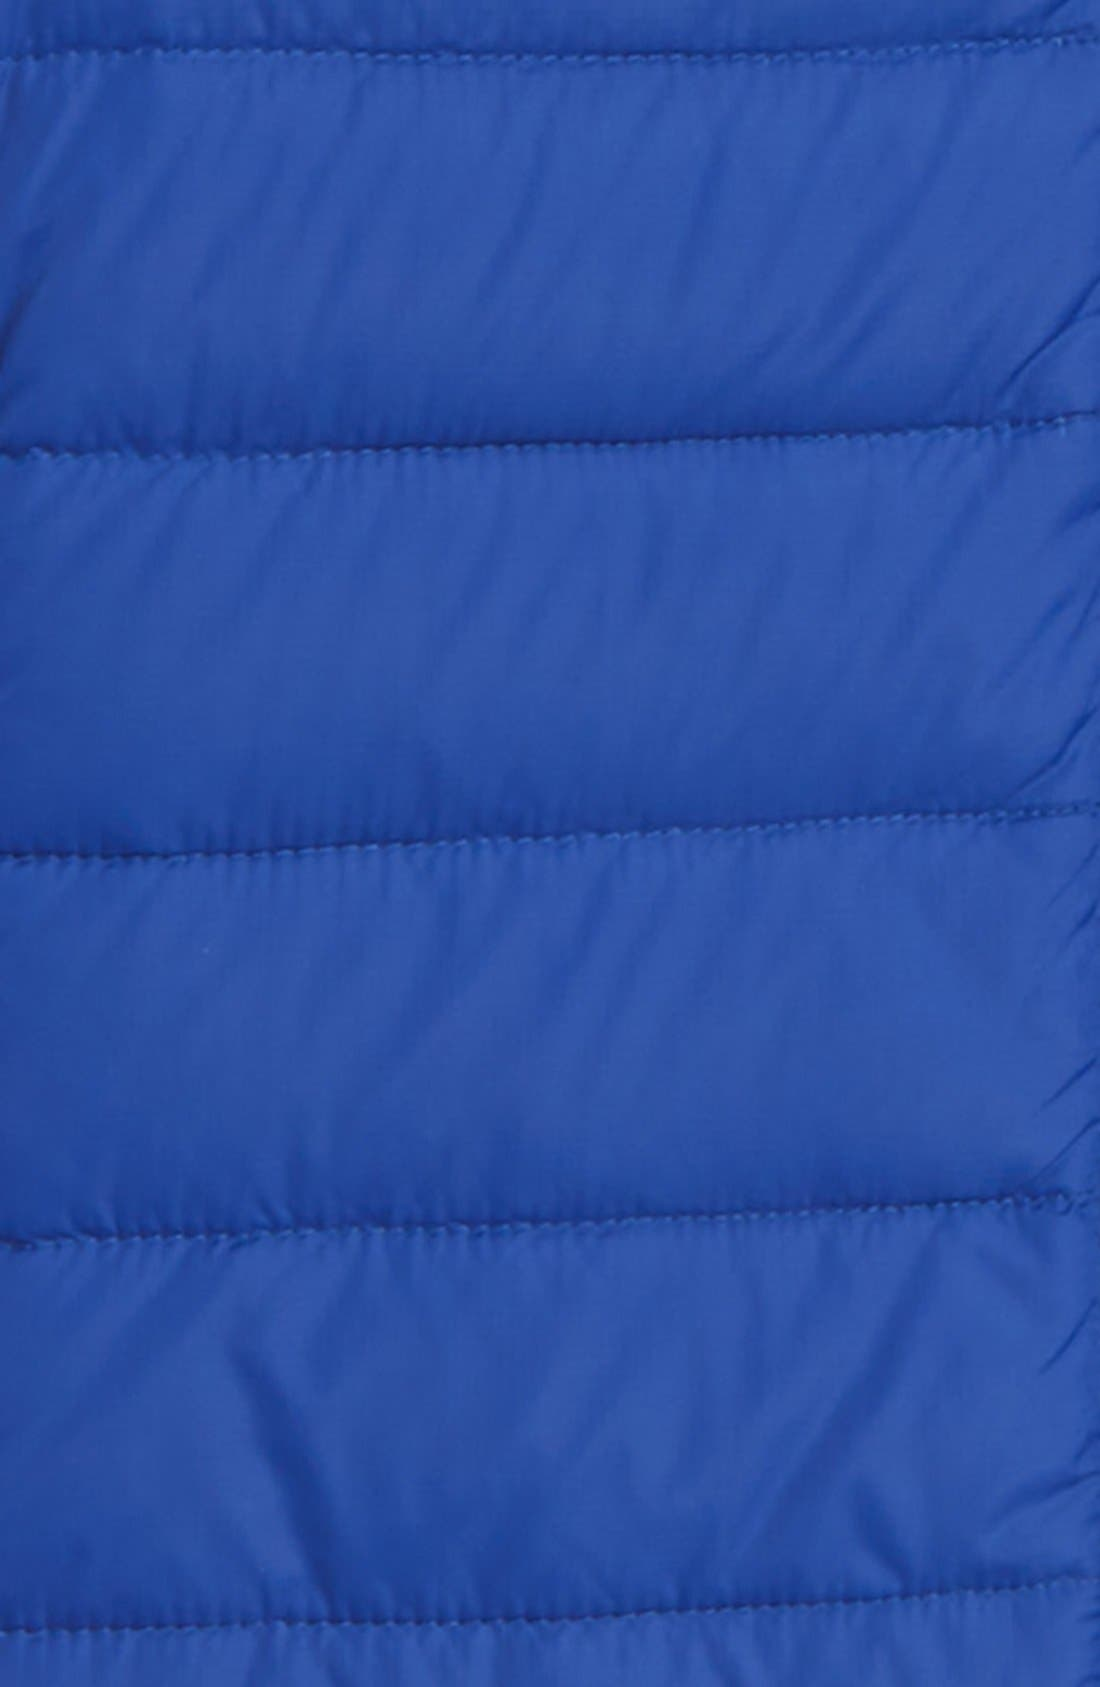 Alternate Image 2  - Canada Goose 'Bobcat' Packable Down Coat (Toddler & Little Kid)